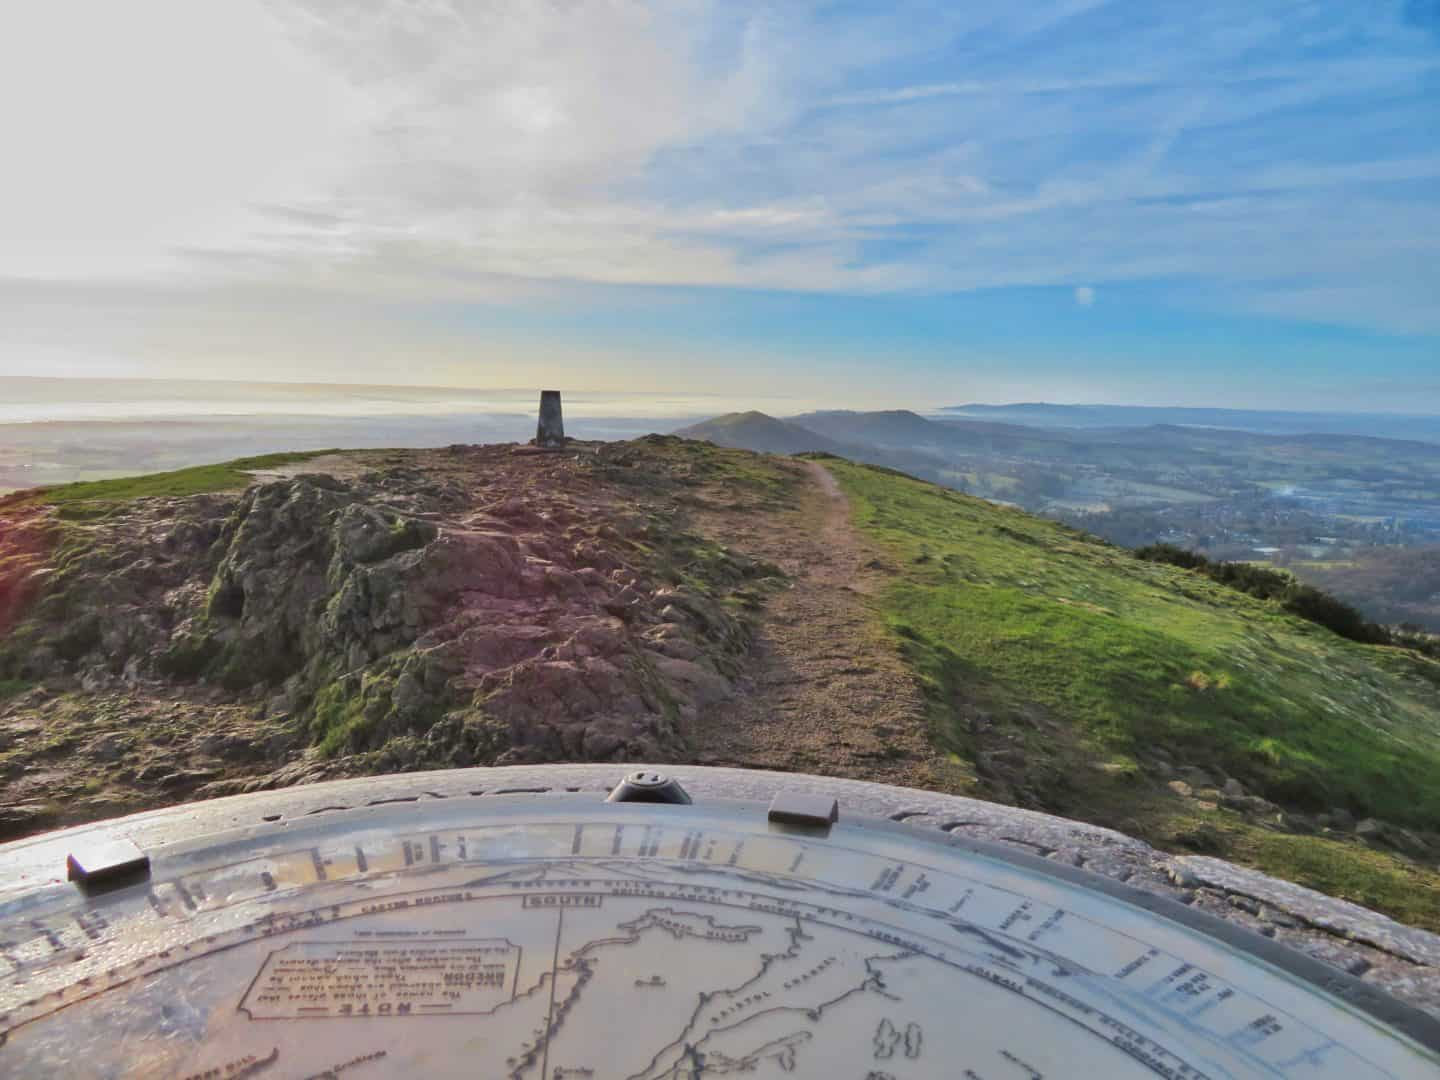 Direction stone in the foreground with a view along the Malvern Hills from the Worcestershire Beacon in the background